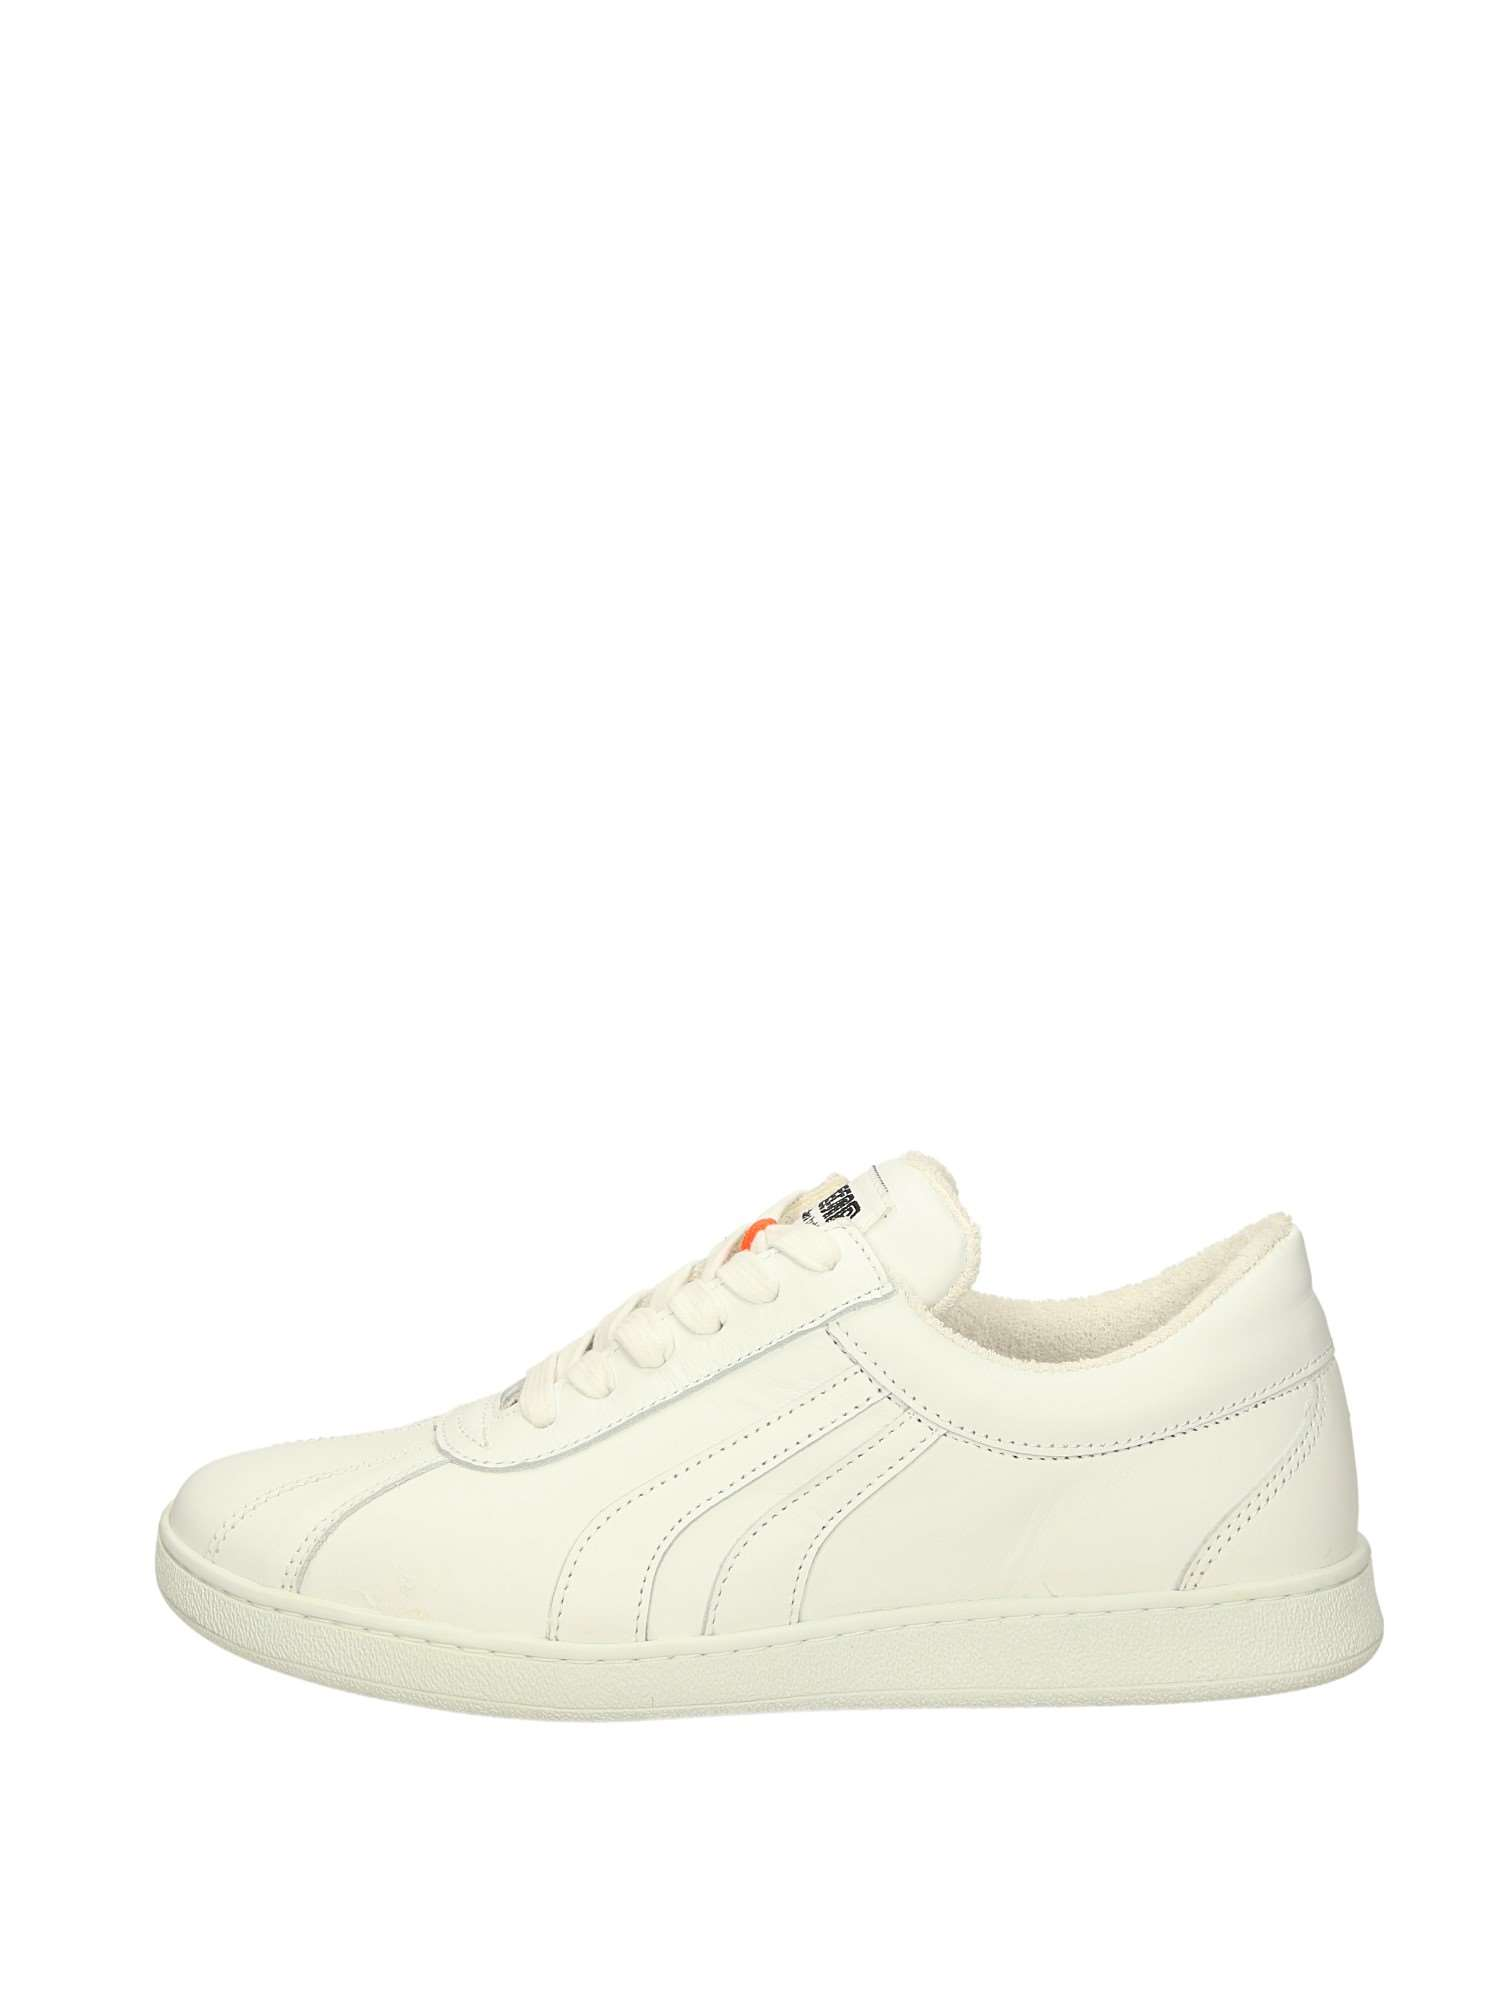 brand new 4d5f2 a6122 Mecap Sneakers Basse Uomo Bianco | Lalilina